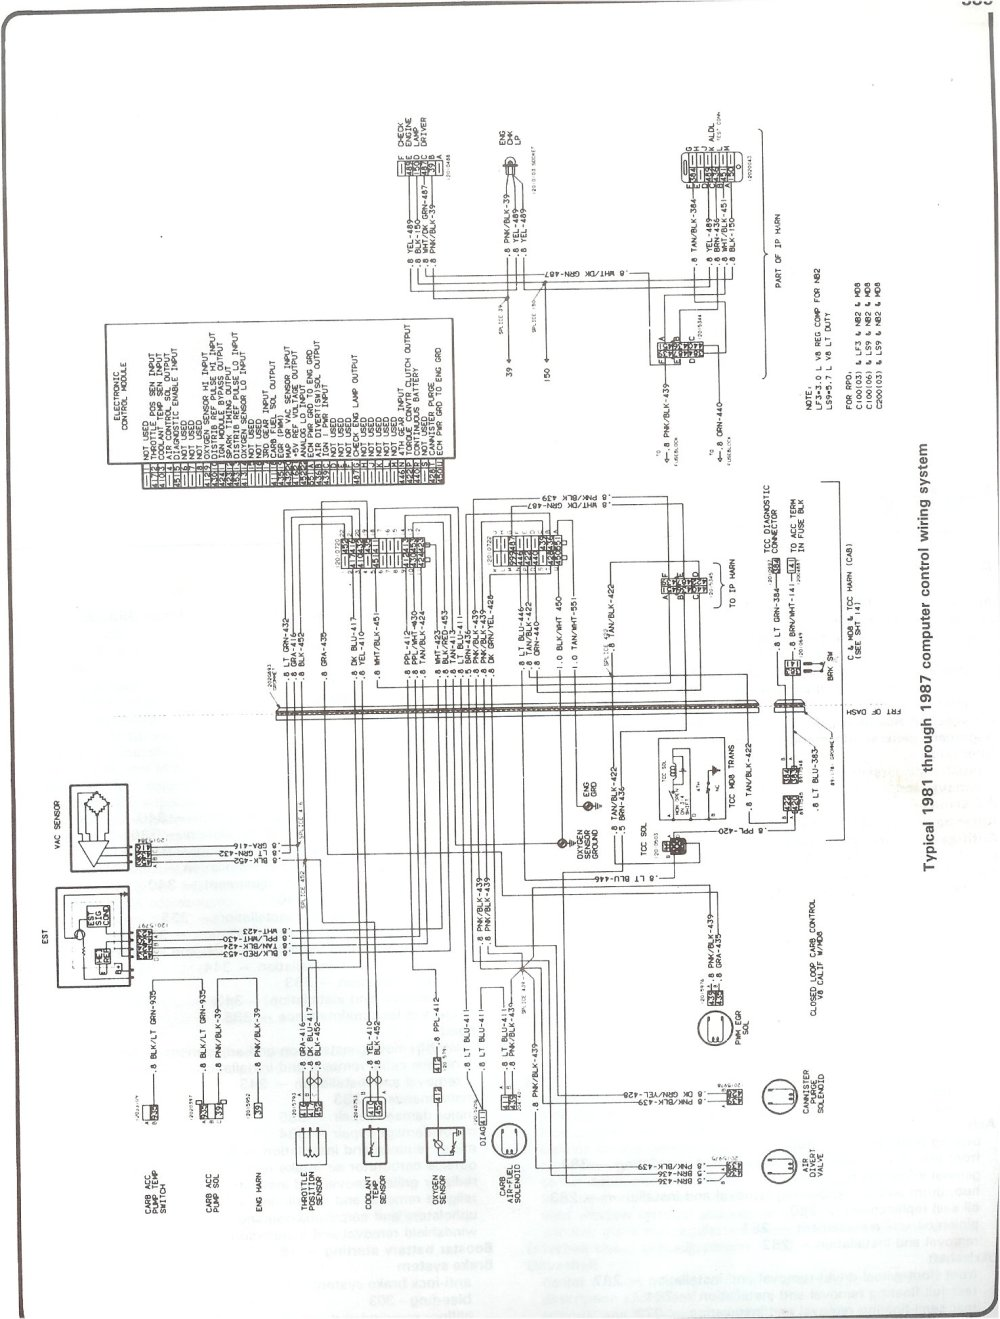 medium resolution of 74 nova wiring harness diagram schematic wiring library 1979 nova wiring diagram 1975 chevy p30 wiring